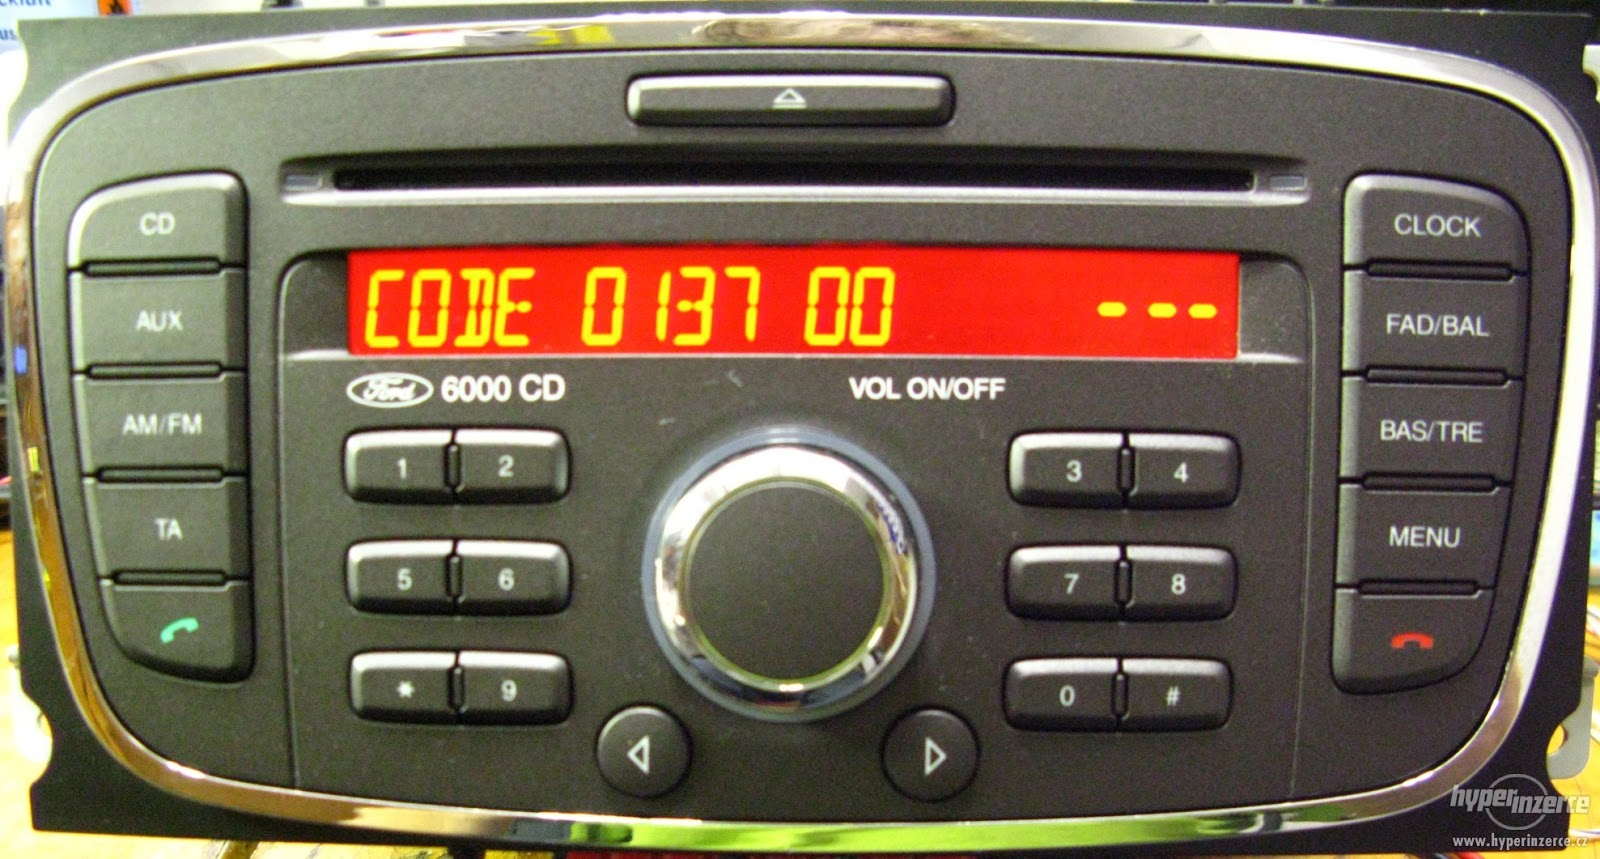 car radio code calculator ford v serial conslearle. Black Bedroom Furniture Sets. Home Design Ideas